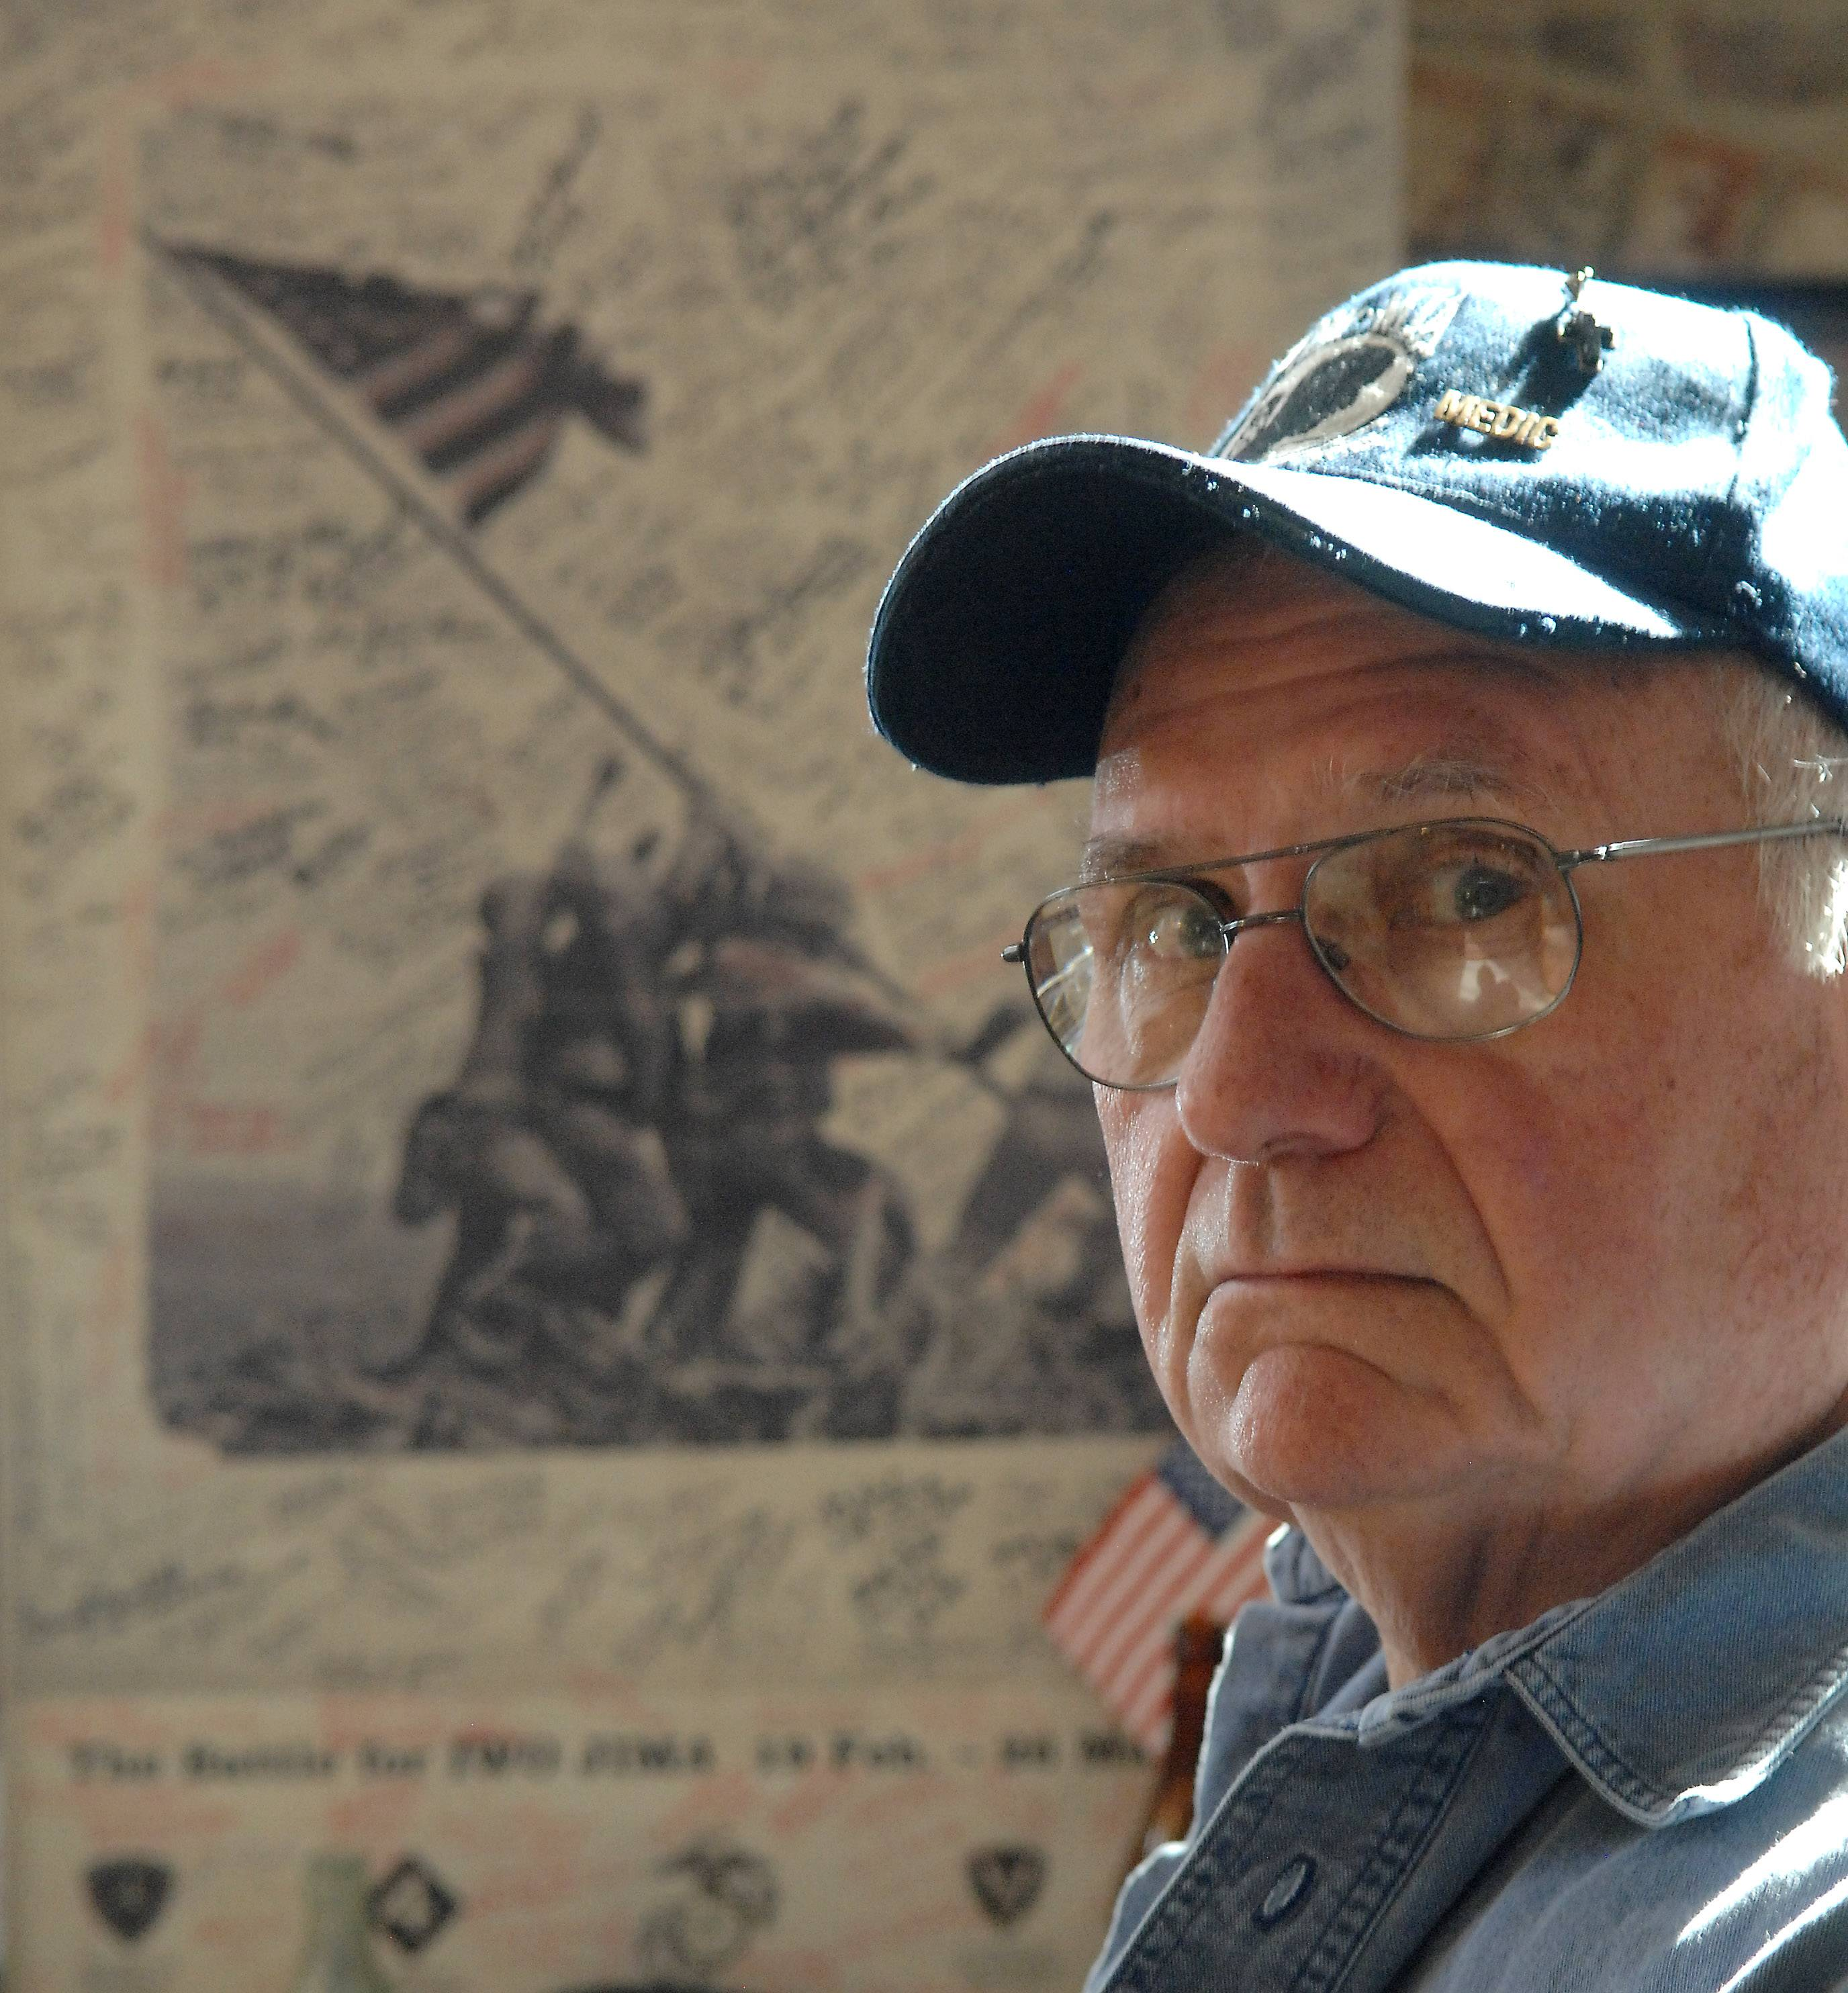 South Elgin resident Steve Thompson has spent a lifetime collecting military memorabilia, but now, he says, it's time to auction it off.